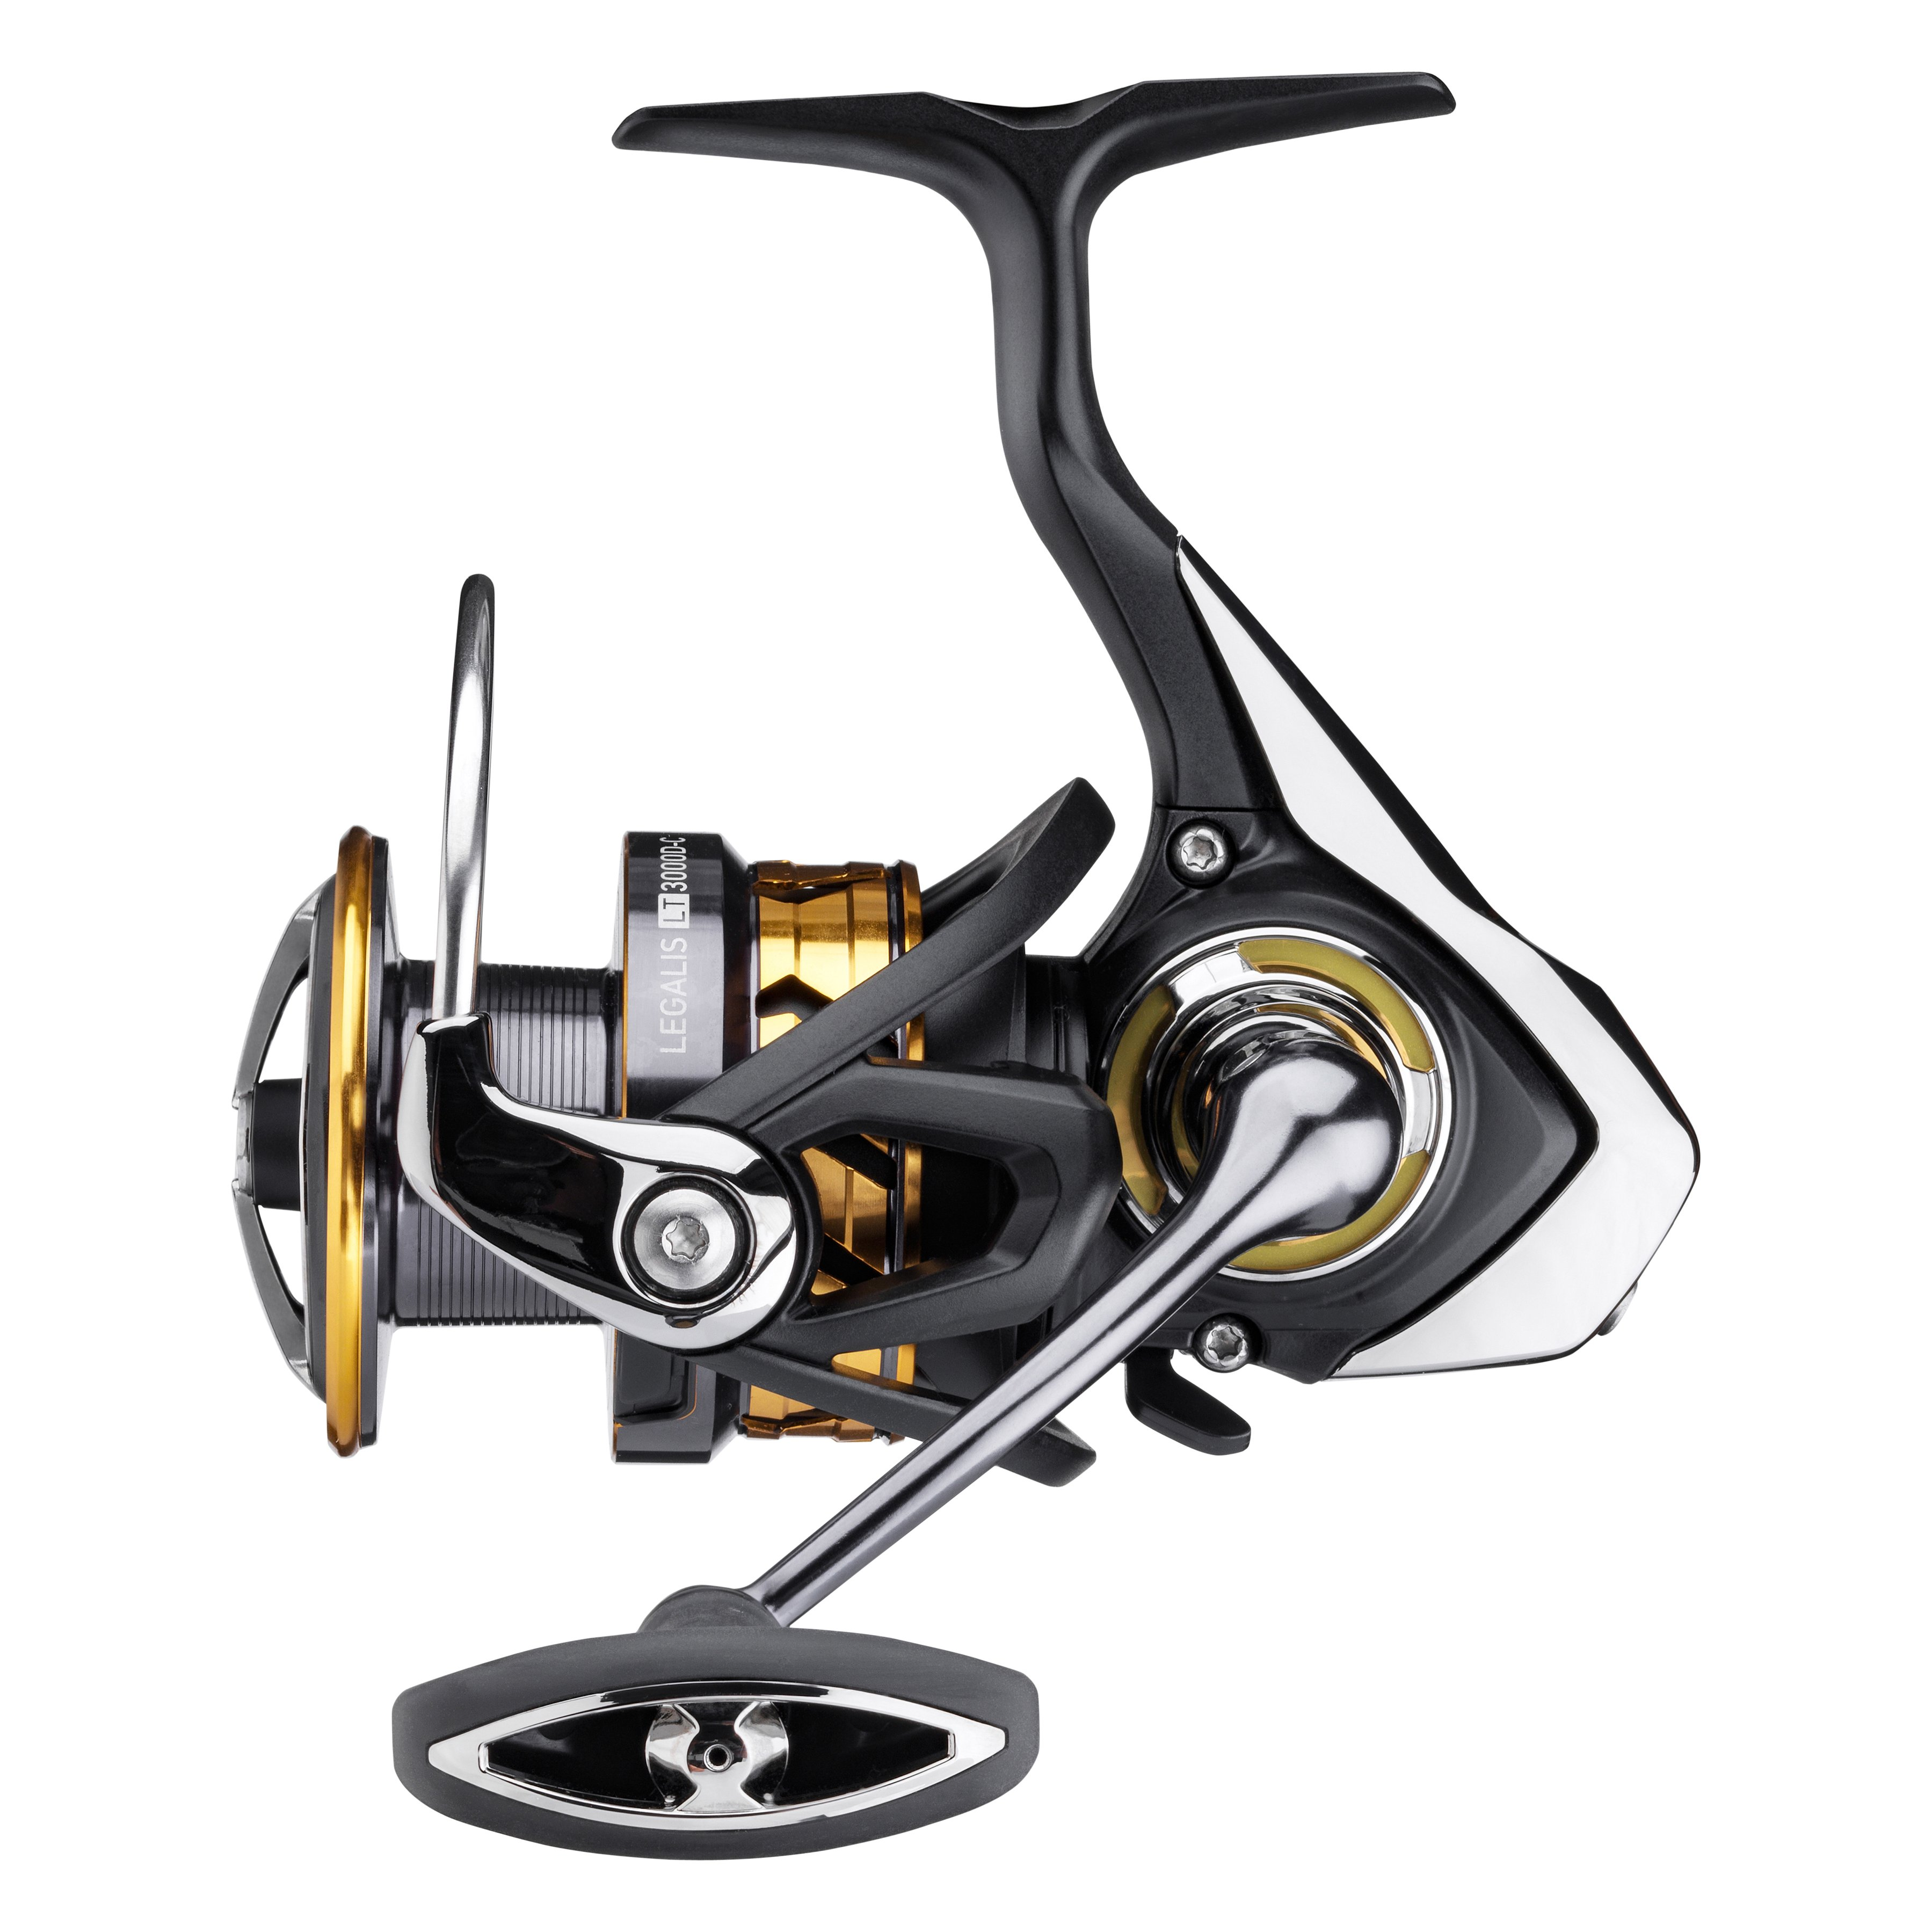 Mulinelli-spinning-reel-daiwa-legalis-lt-lurefishing-planet.